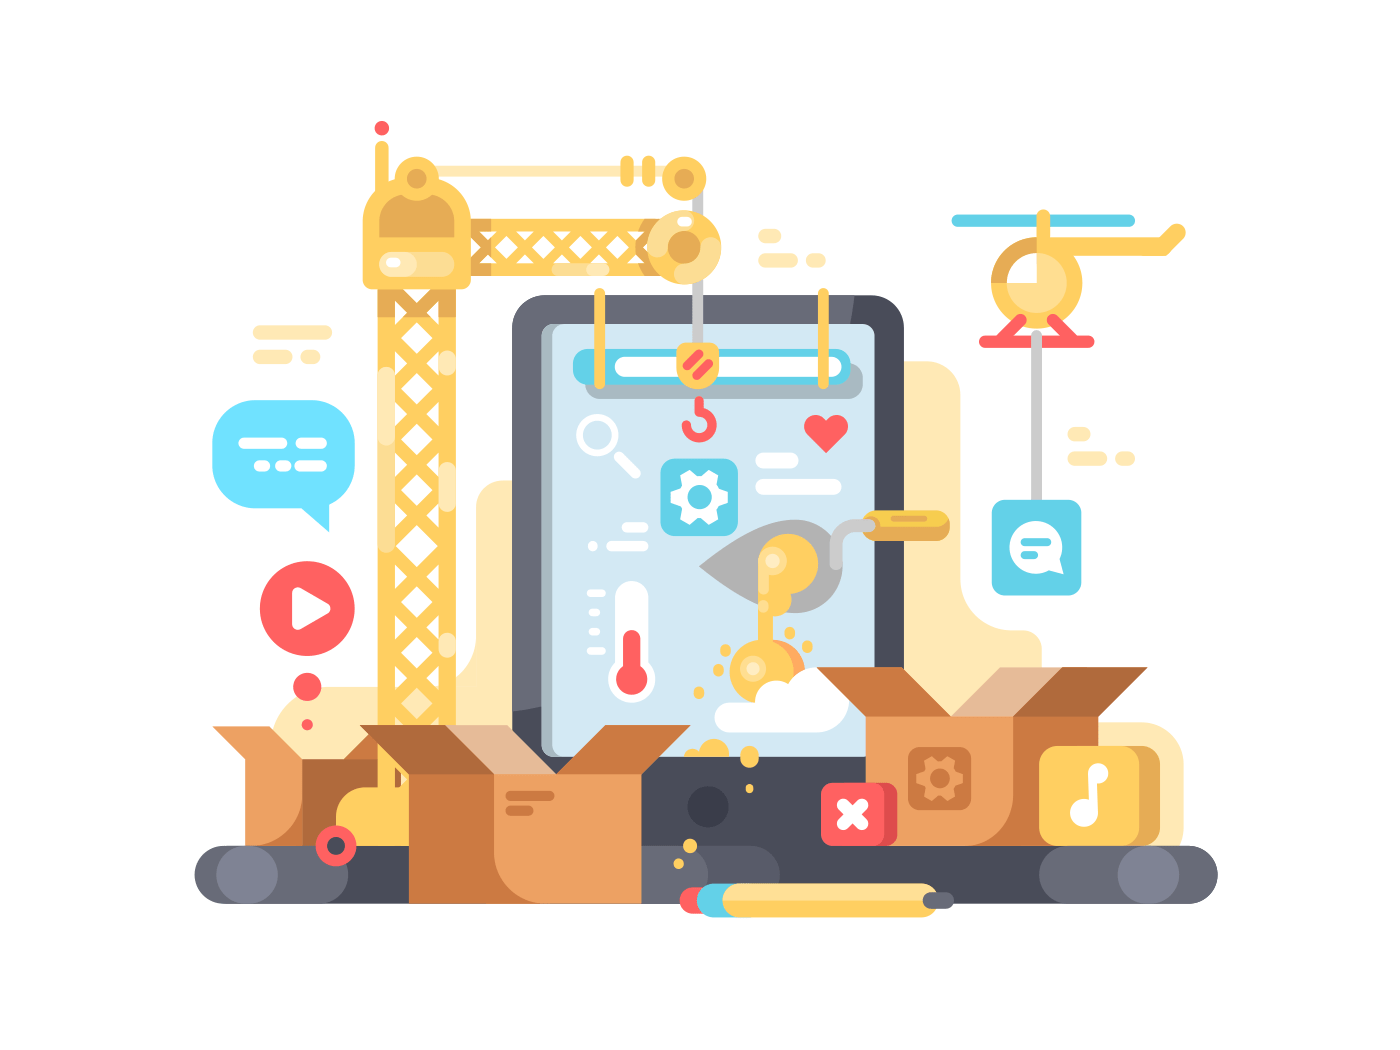 Creation and development of app illustration